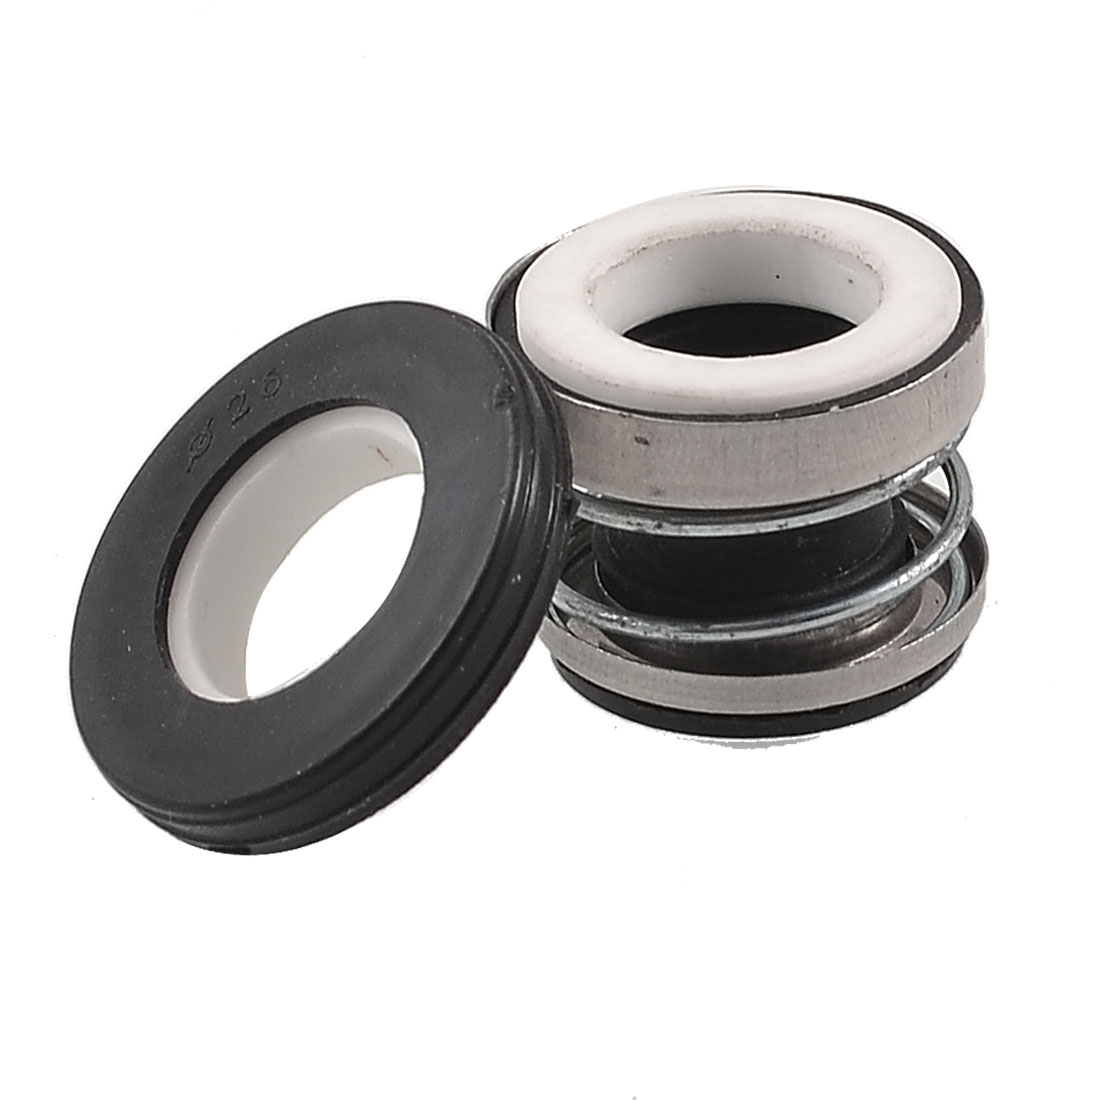 Rubber Bellows Ceramic Rotary Ring 11mm Inner Dia Pump Mechanical Seal